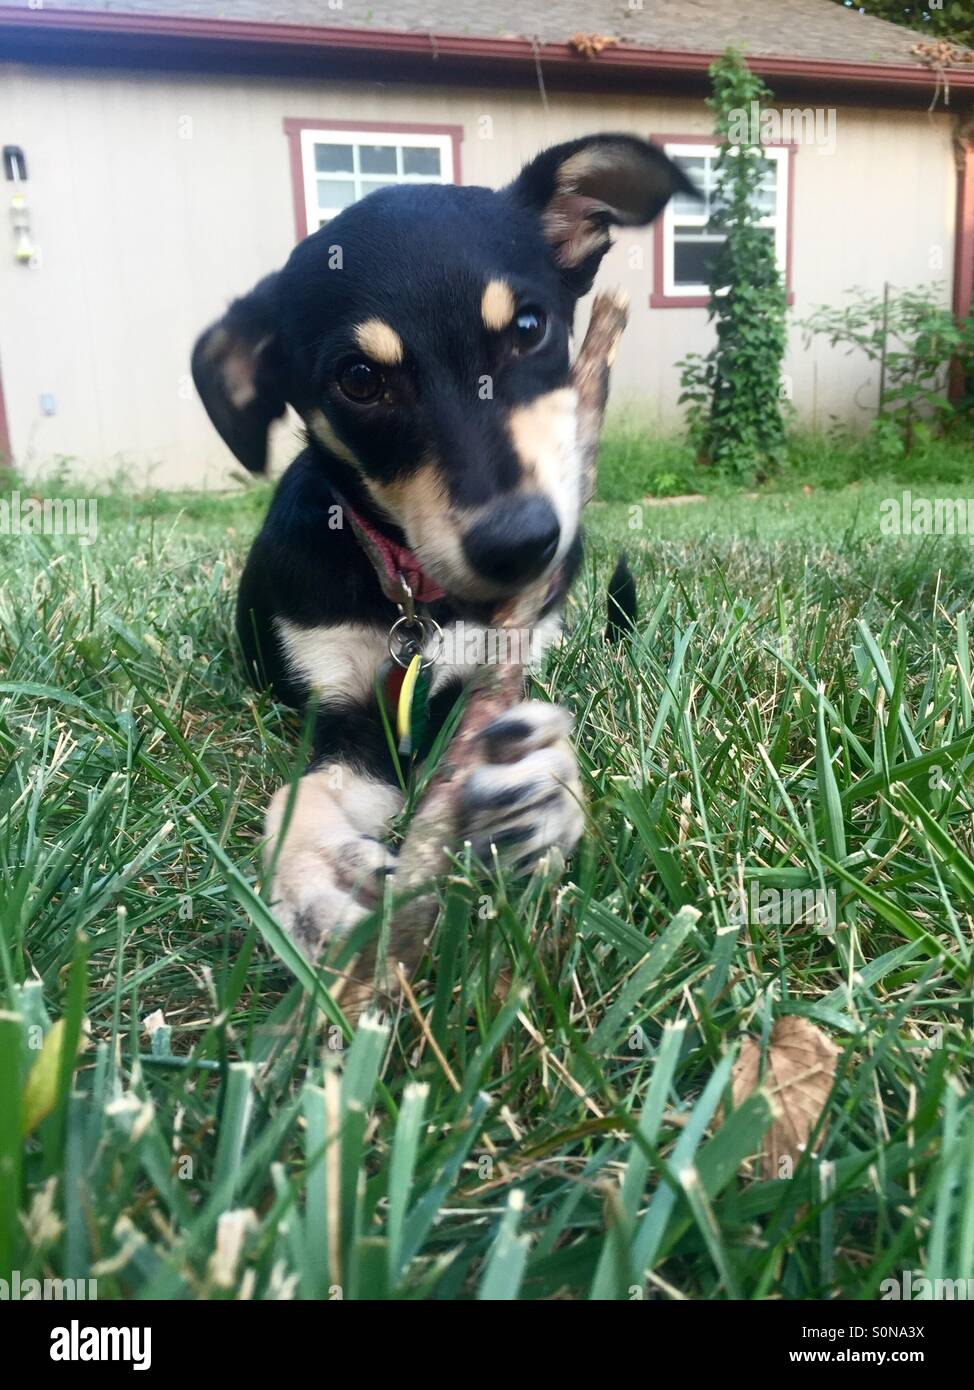 Teething puppy playing outside - Stock Image